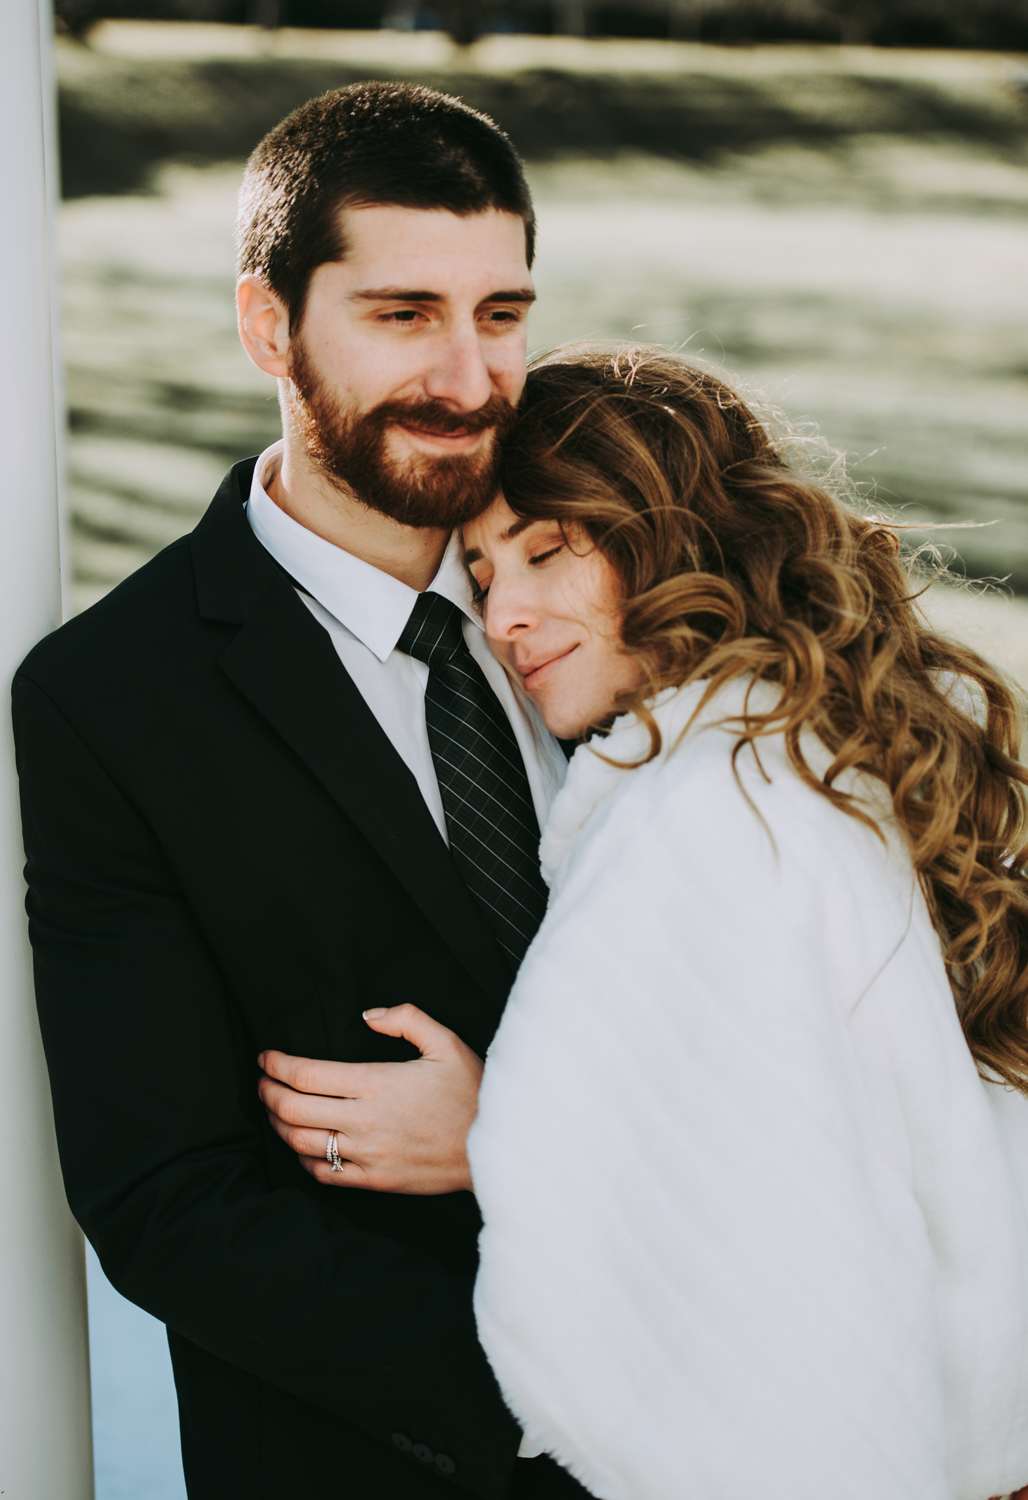 neffy_brad_elopement_marthas_vineyard-5277.jpg